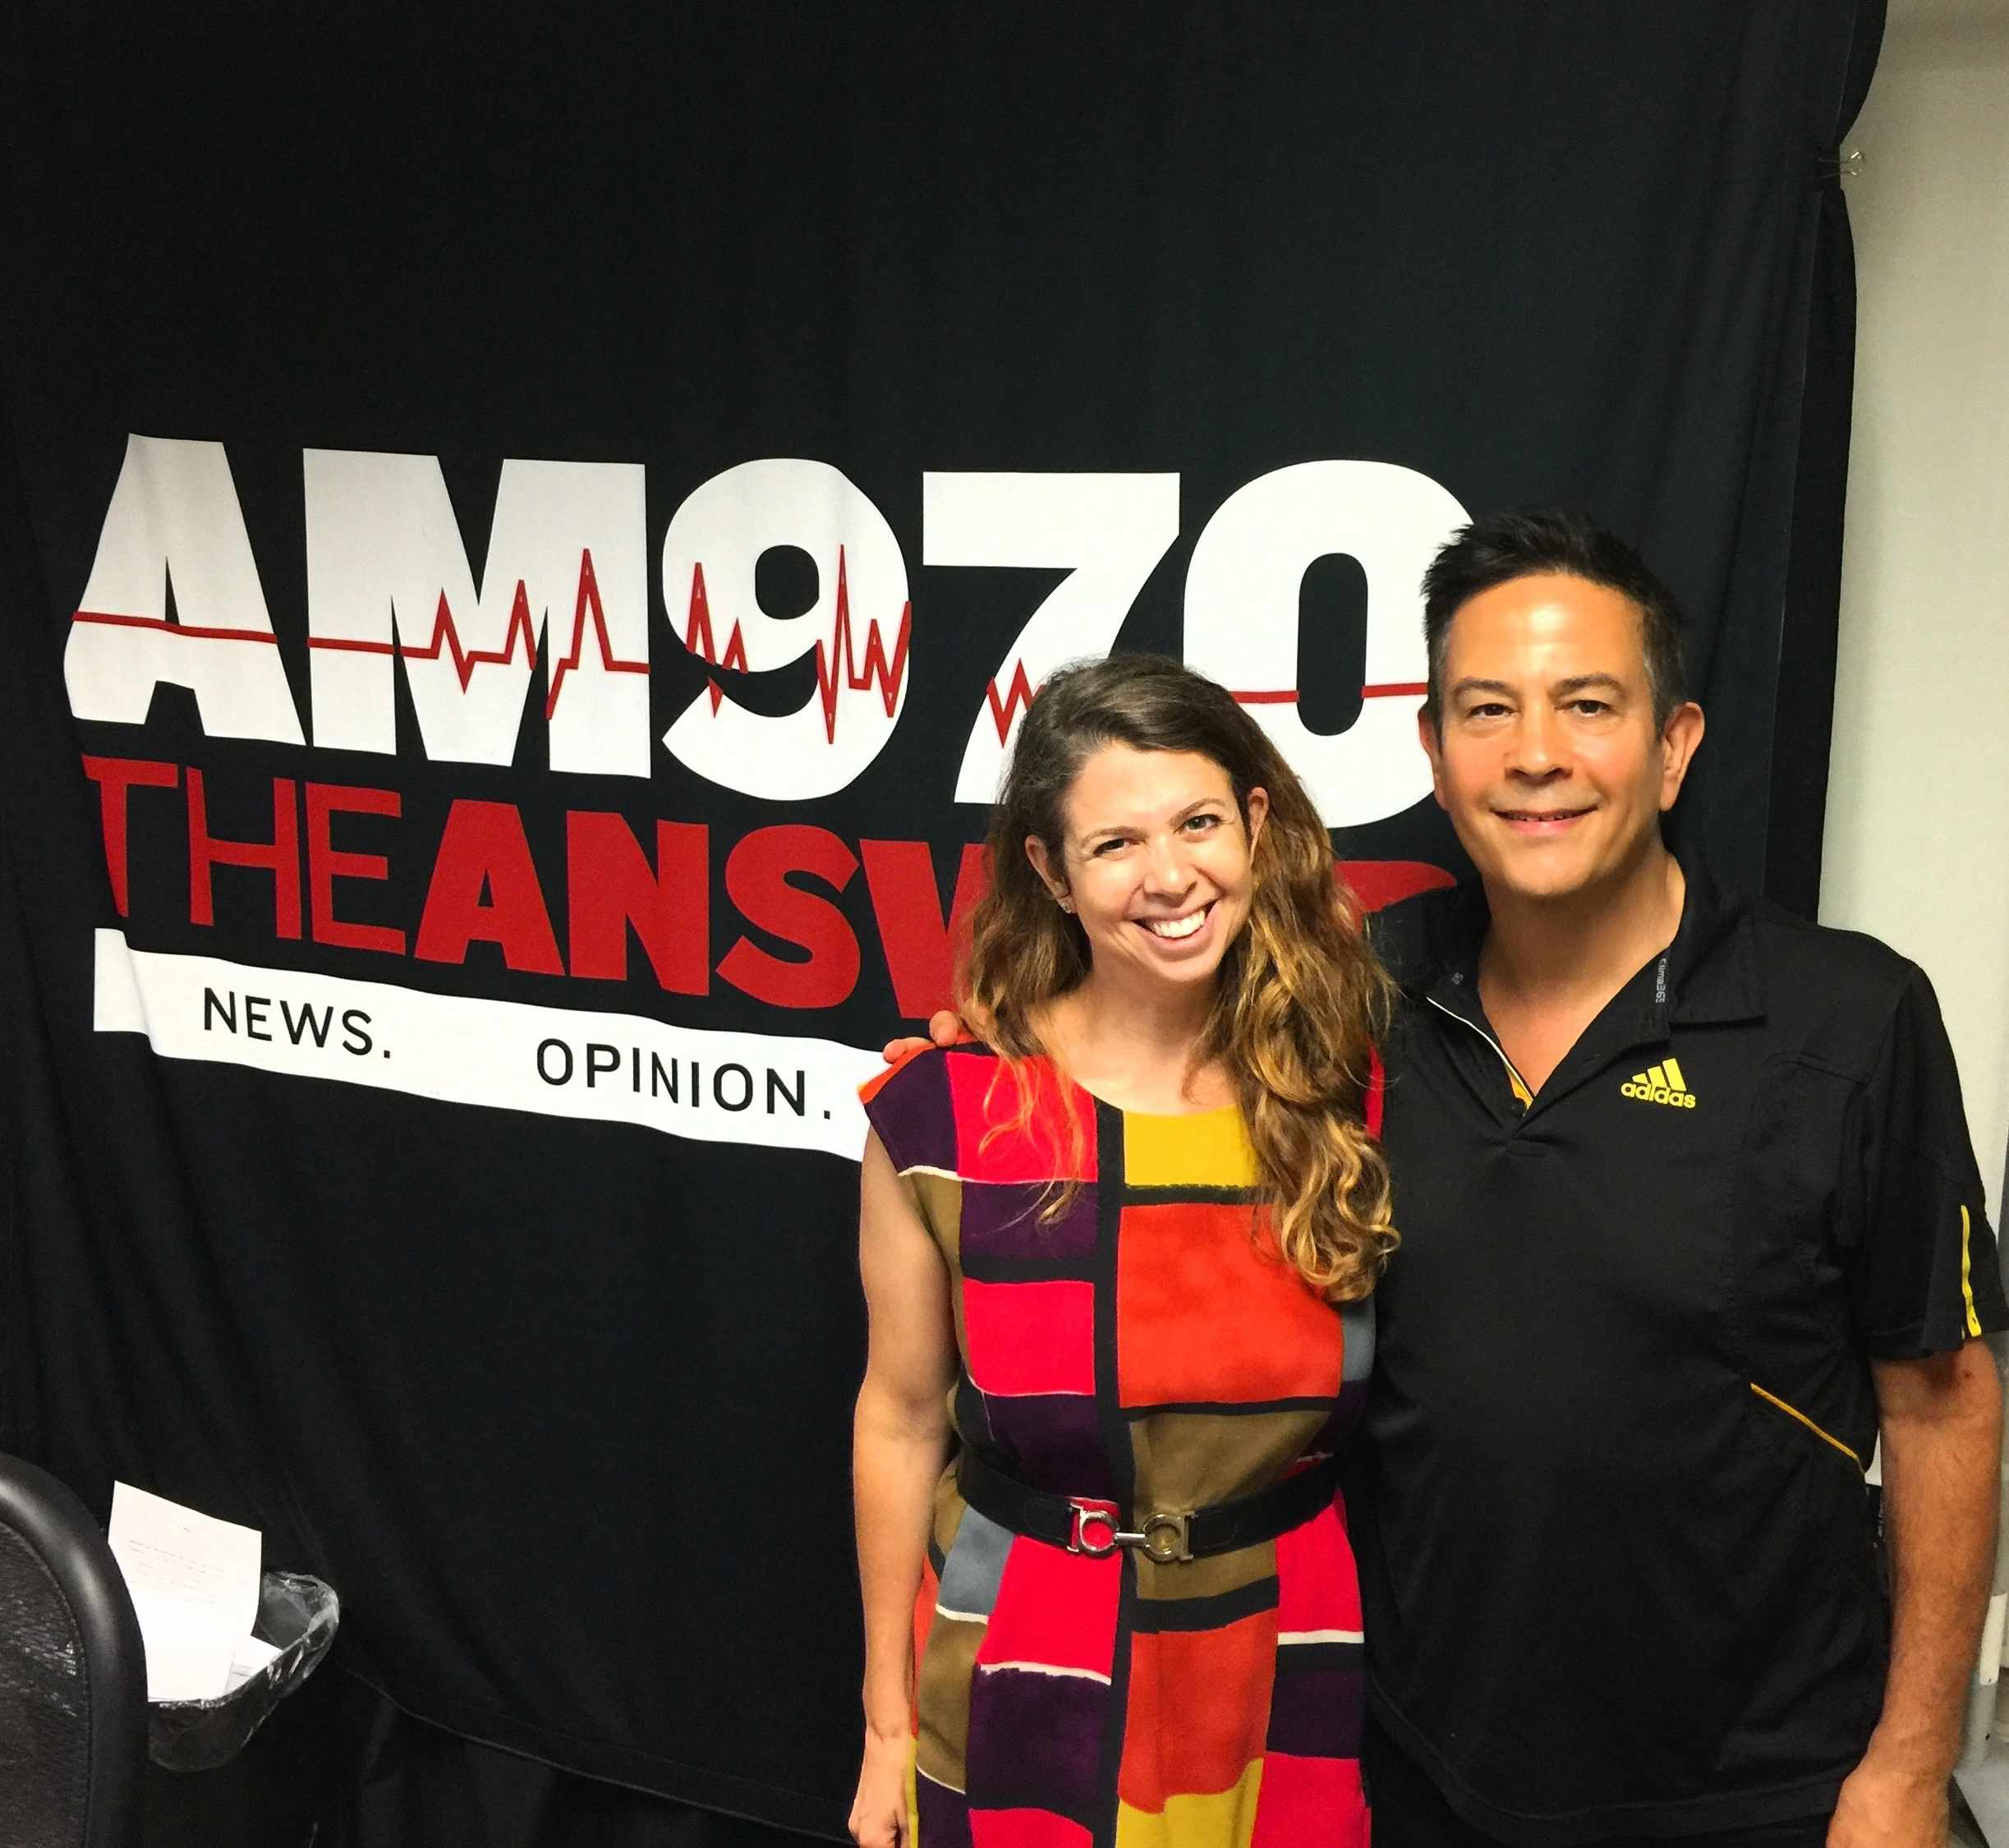 michelle-jerson-and-victor-on-am-970-radio_pp